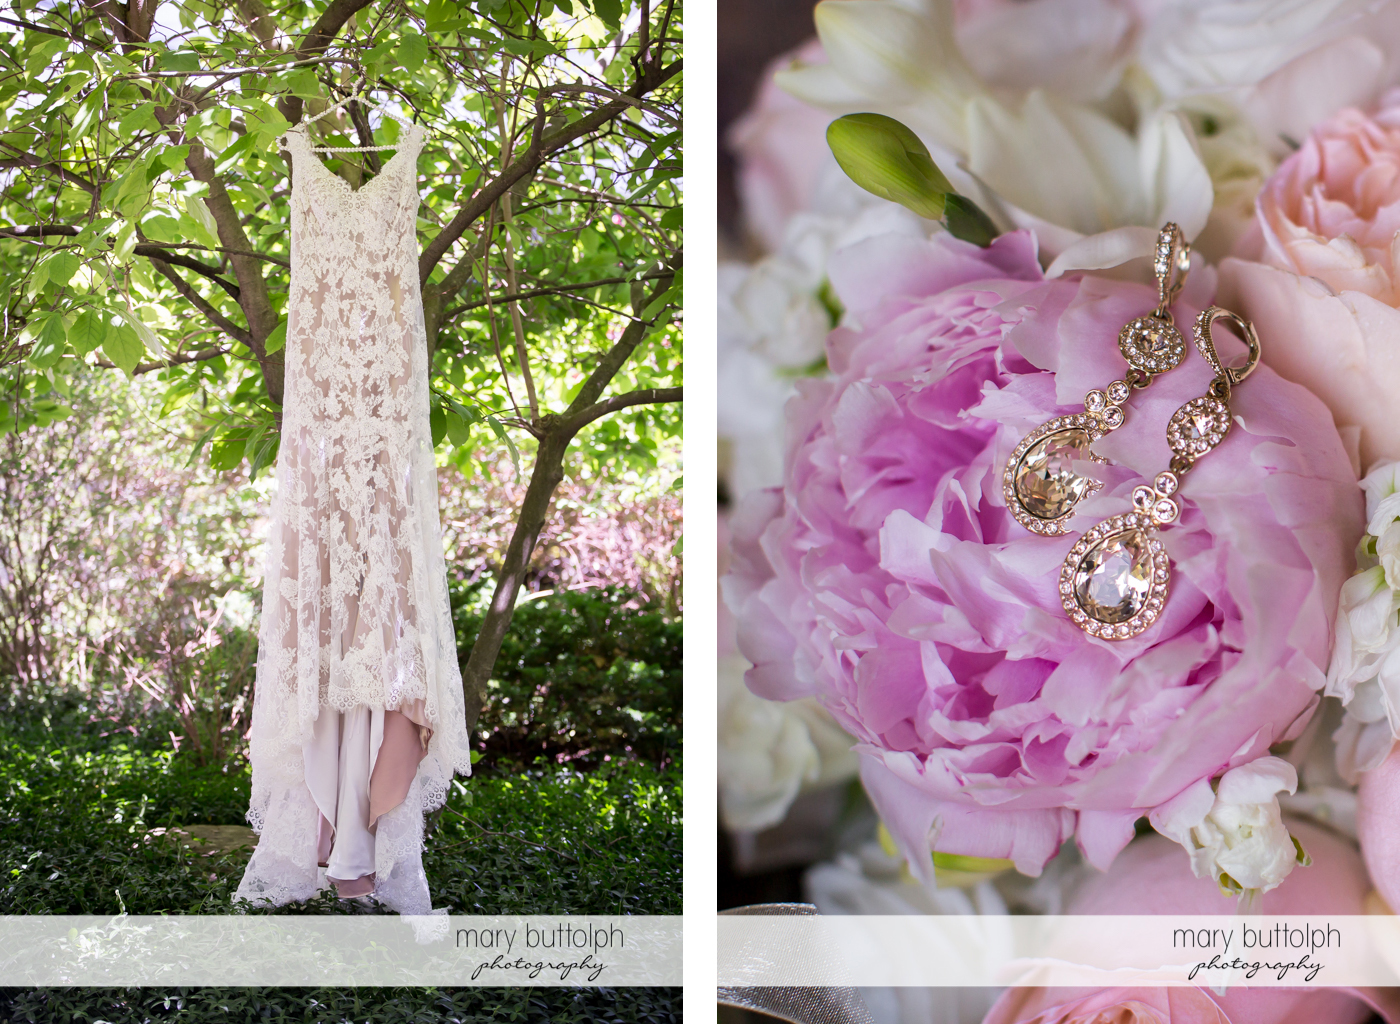 Bride's wedding dress hangs from a tree while her earrings sit on flowers in the garden at The Lodge at Welch Allyn Wedding